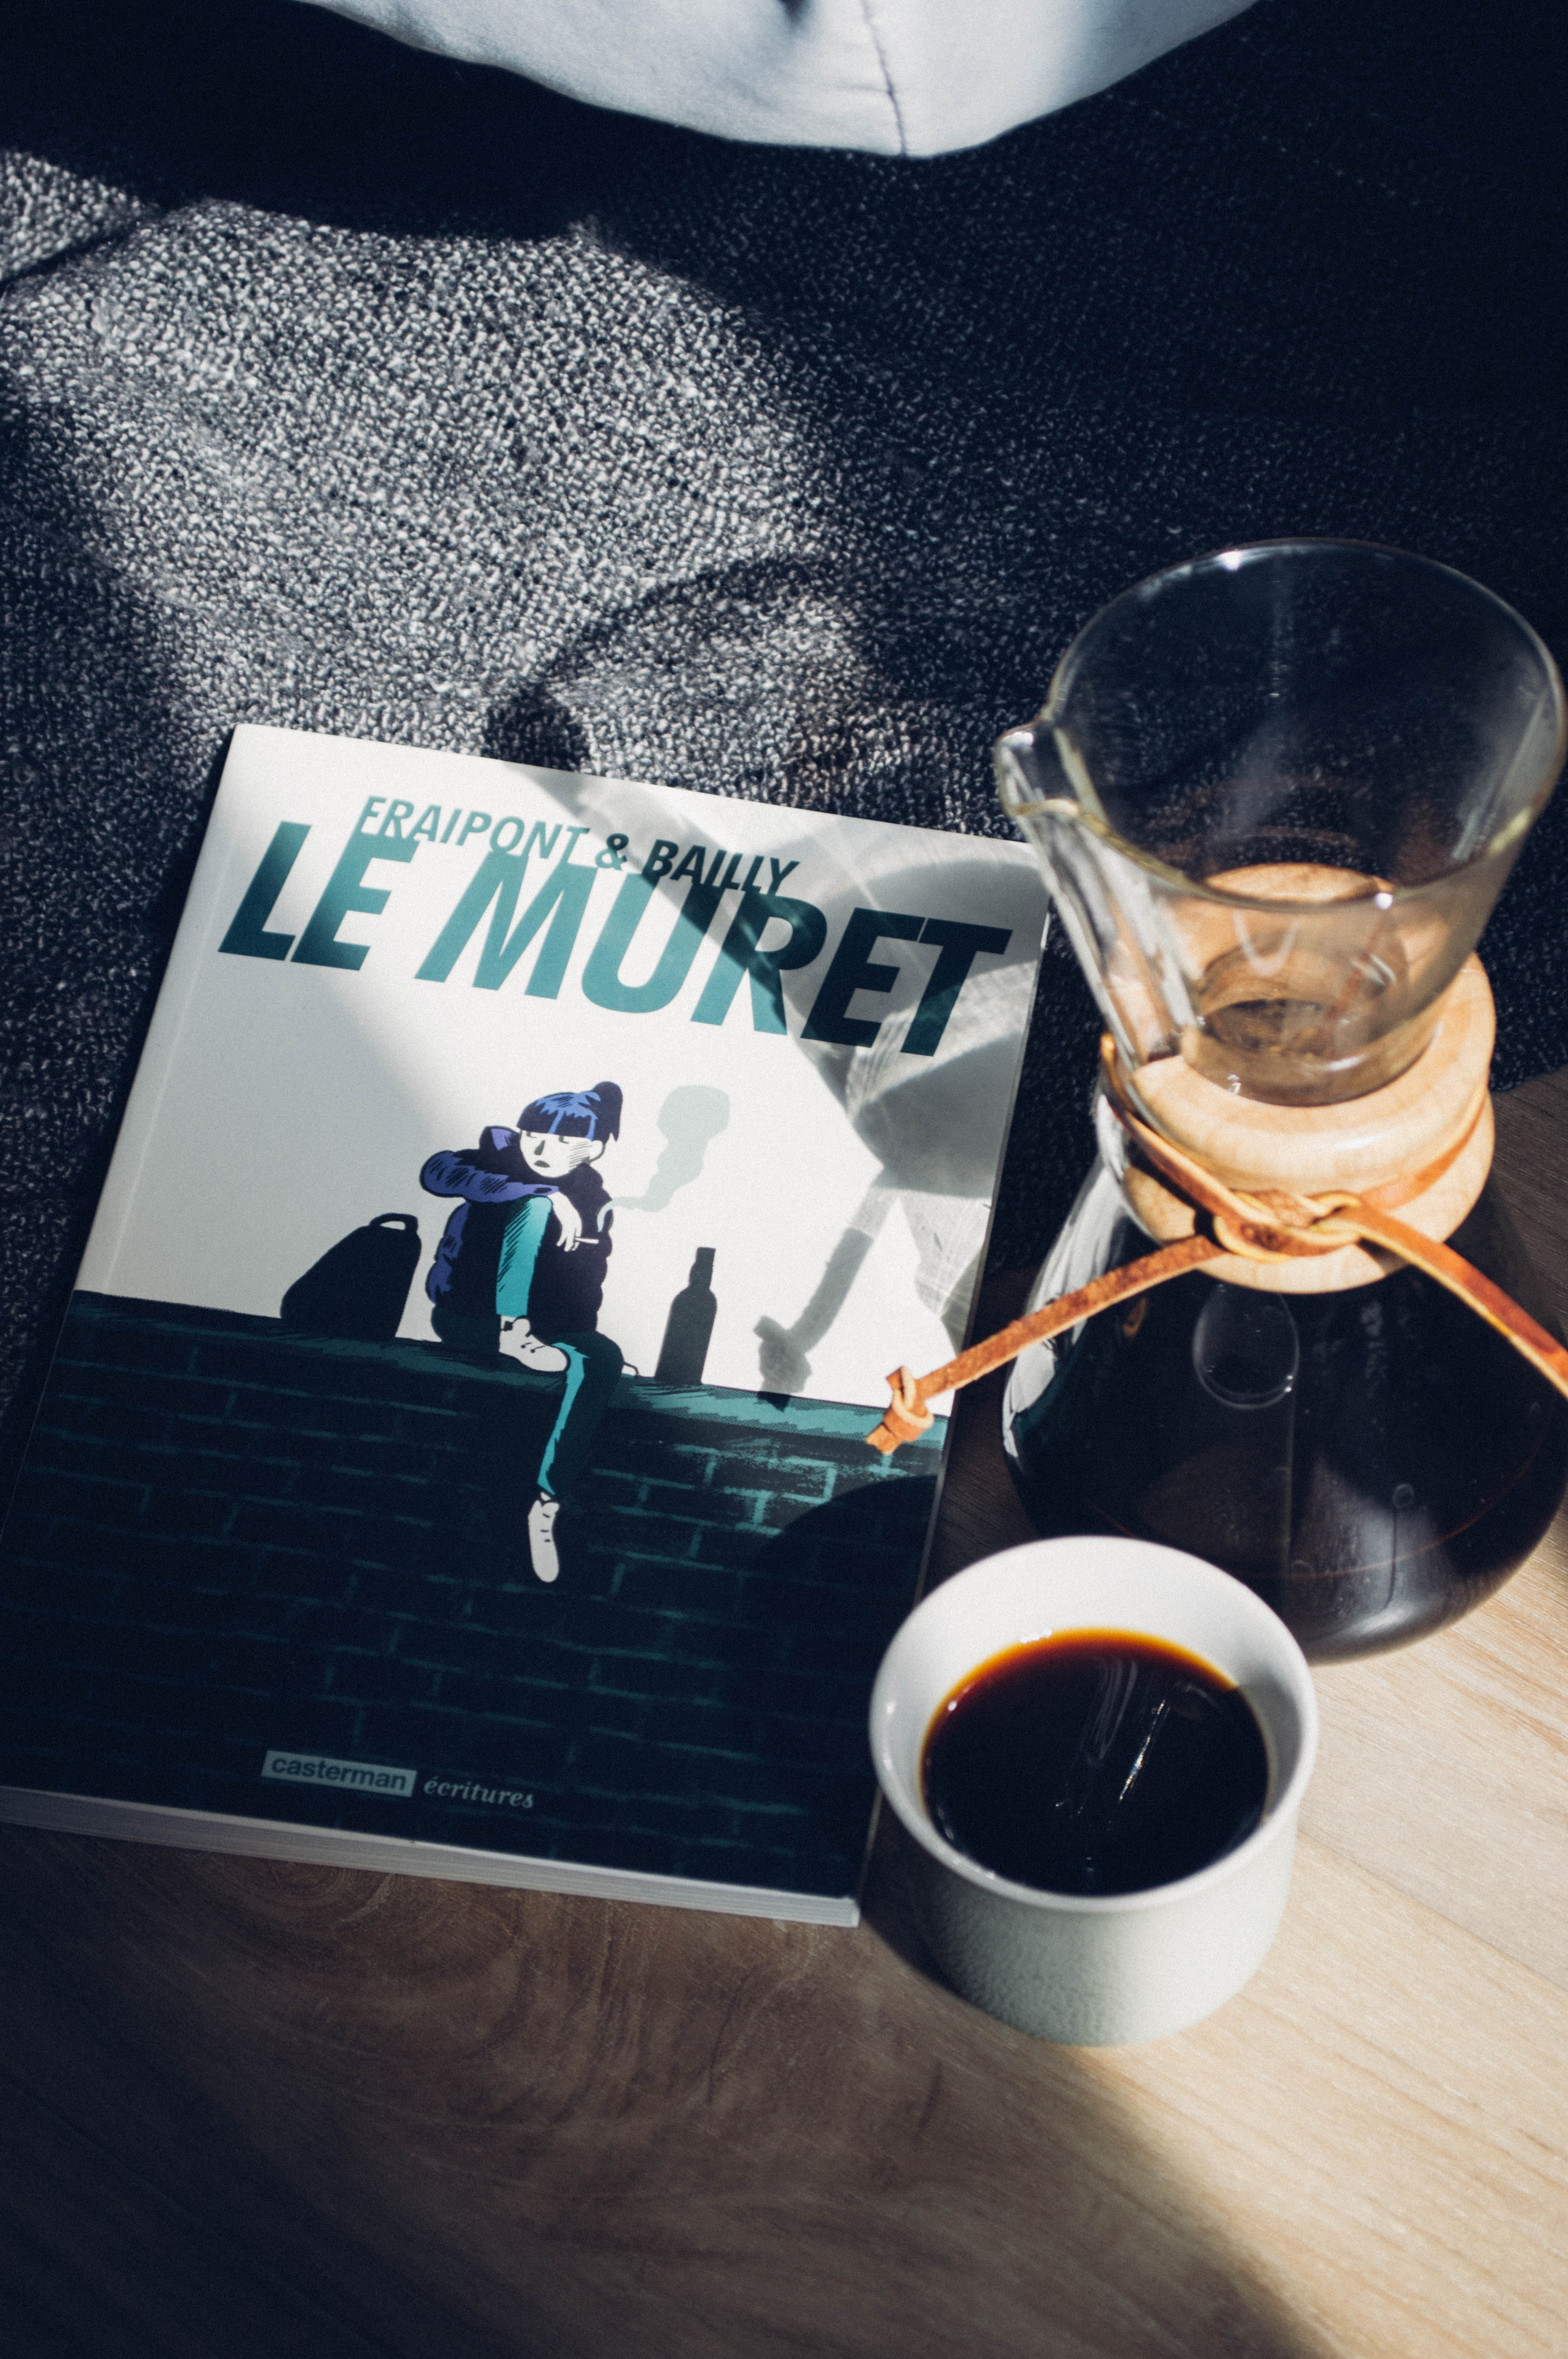 A cup of coffee and Chemex sit on a wood surface aside a book